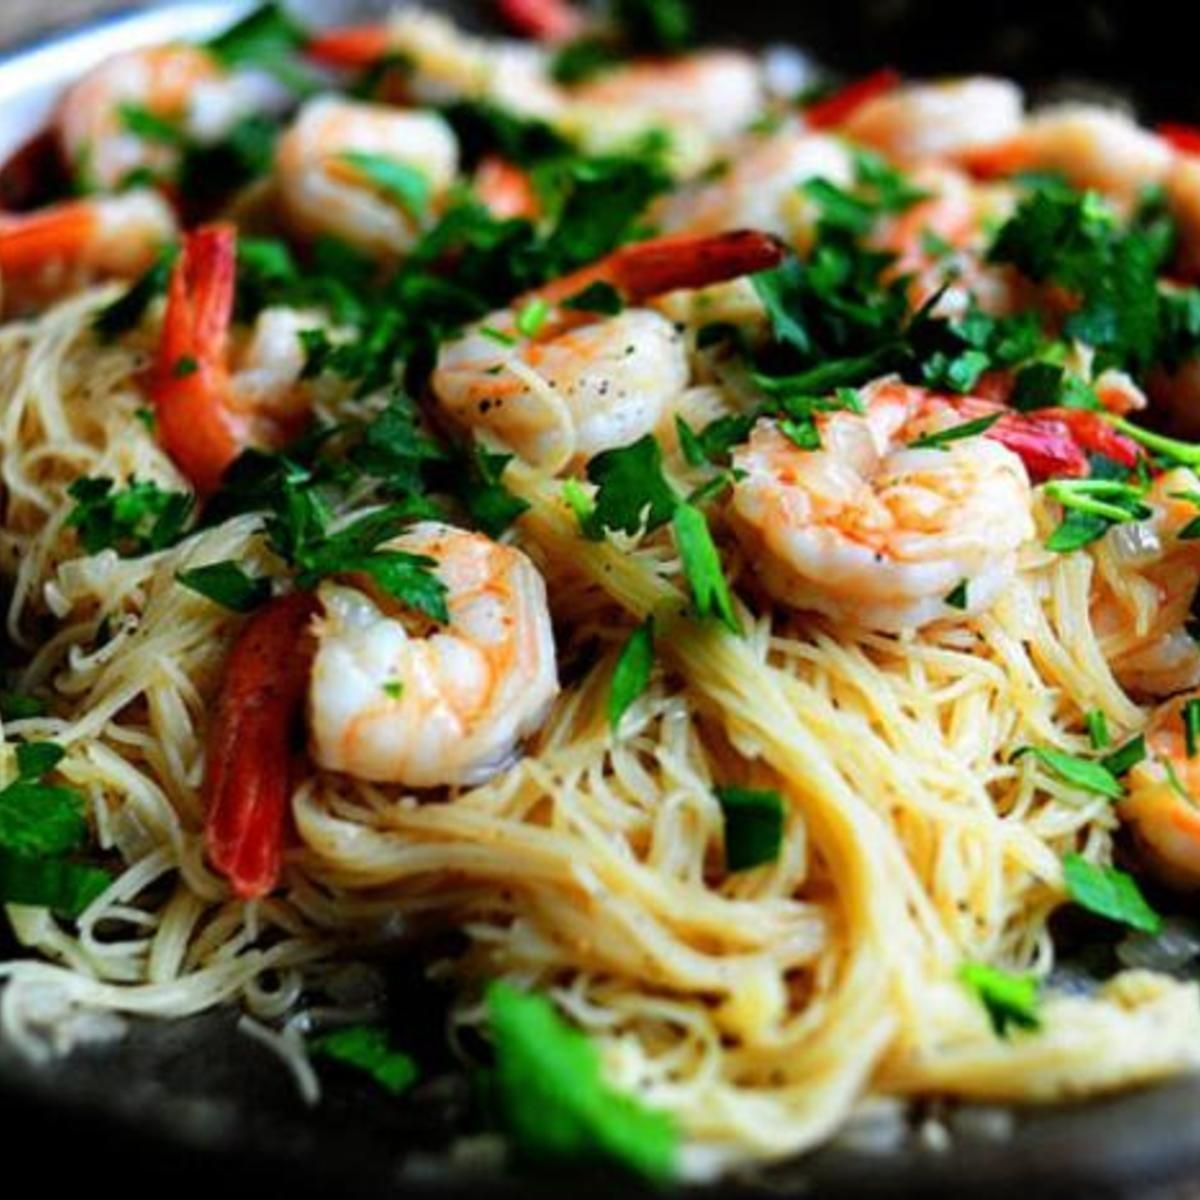 16-Minute Meal: Shrimp Scampi   The Pioneer Woman Cooks   Ree Drummond #shrimpscampi 16-Minute Meal: Shrimp Scampi   The Pioneer Woman Cooks   Ree Drummond #shrimpscampi